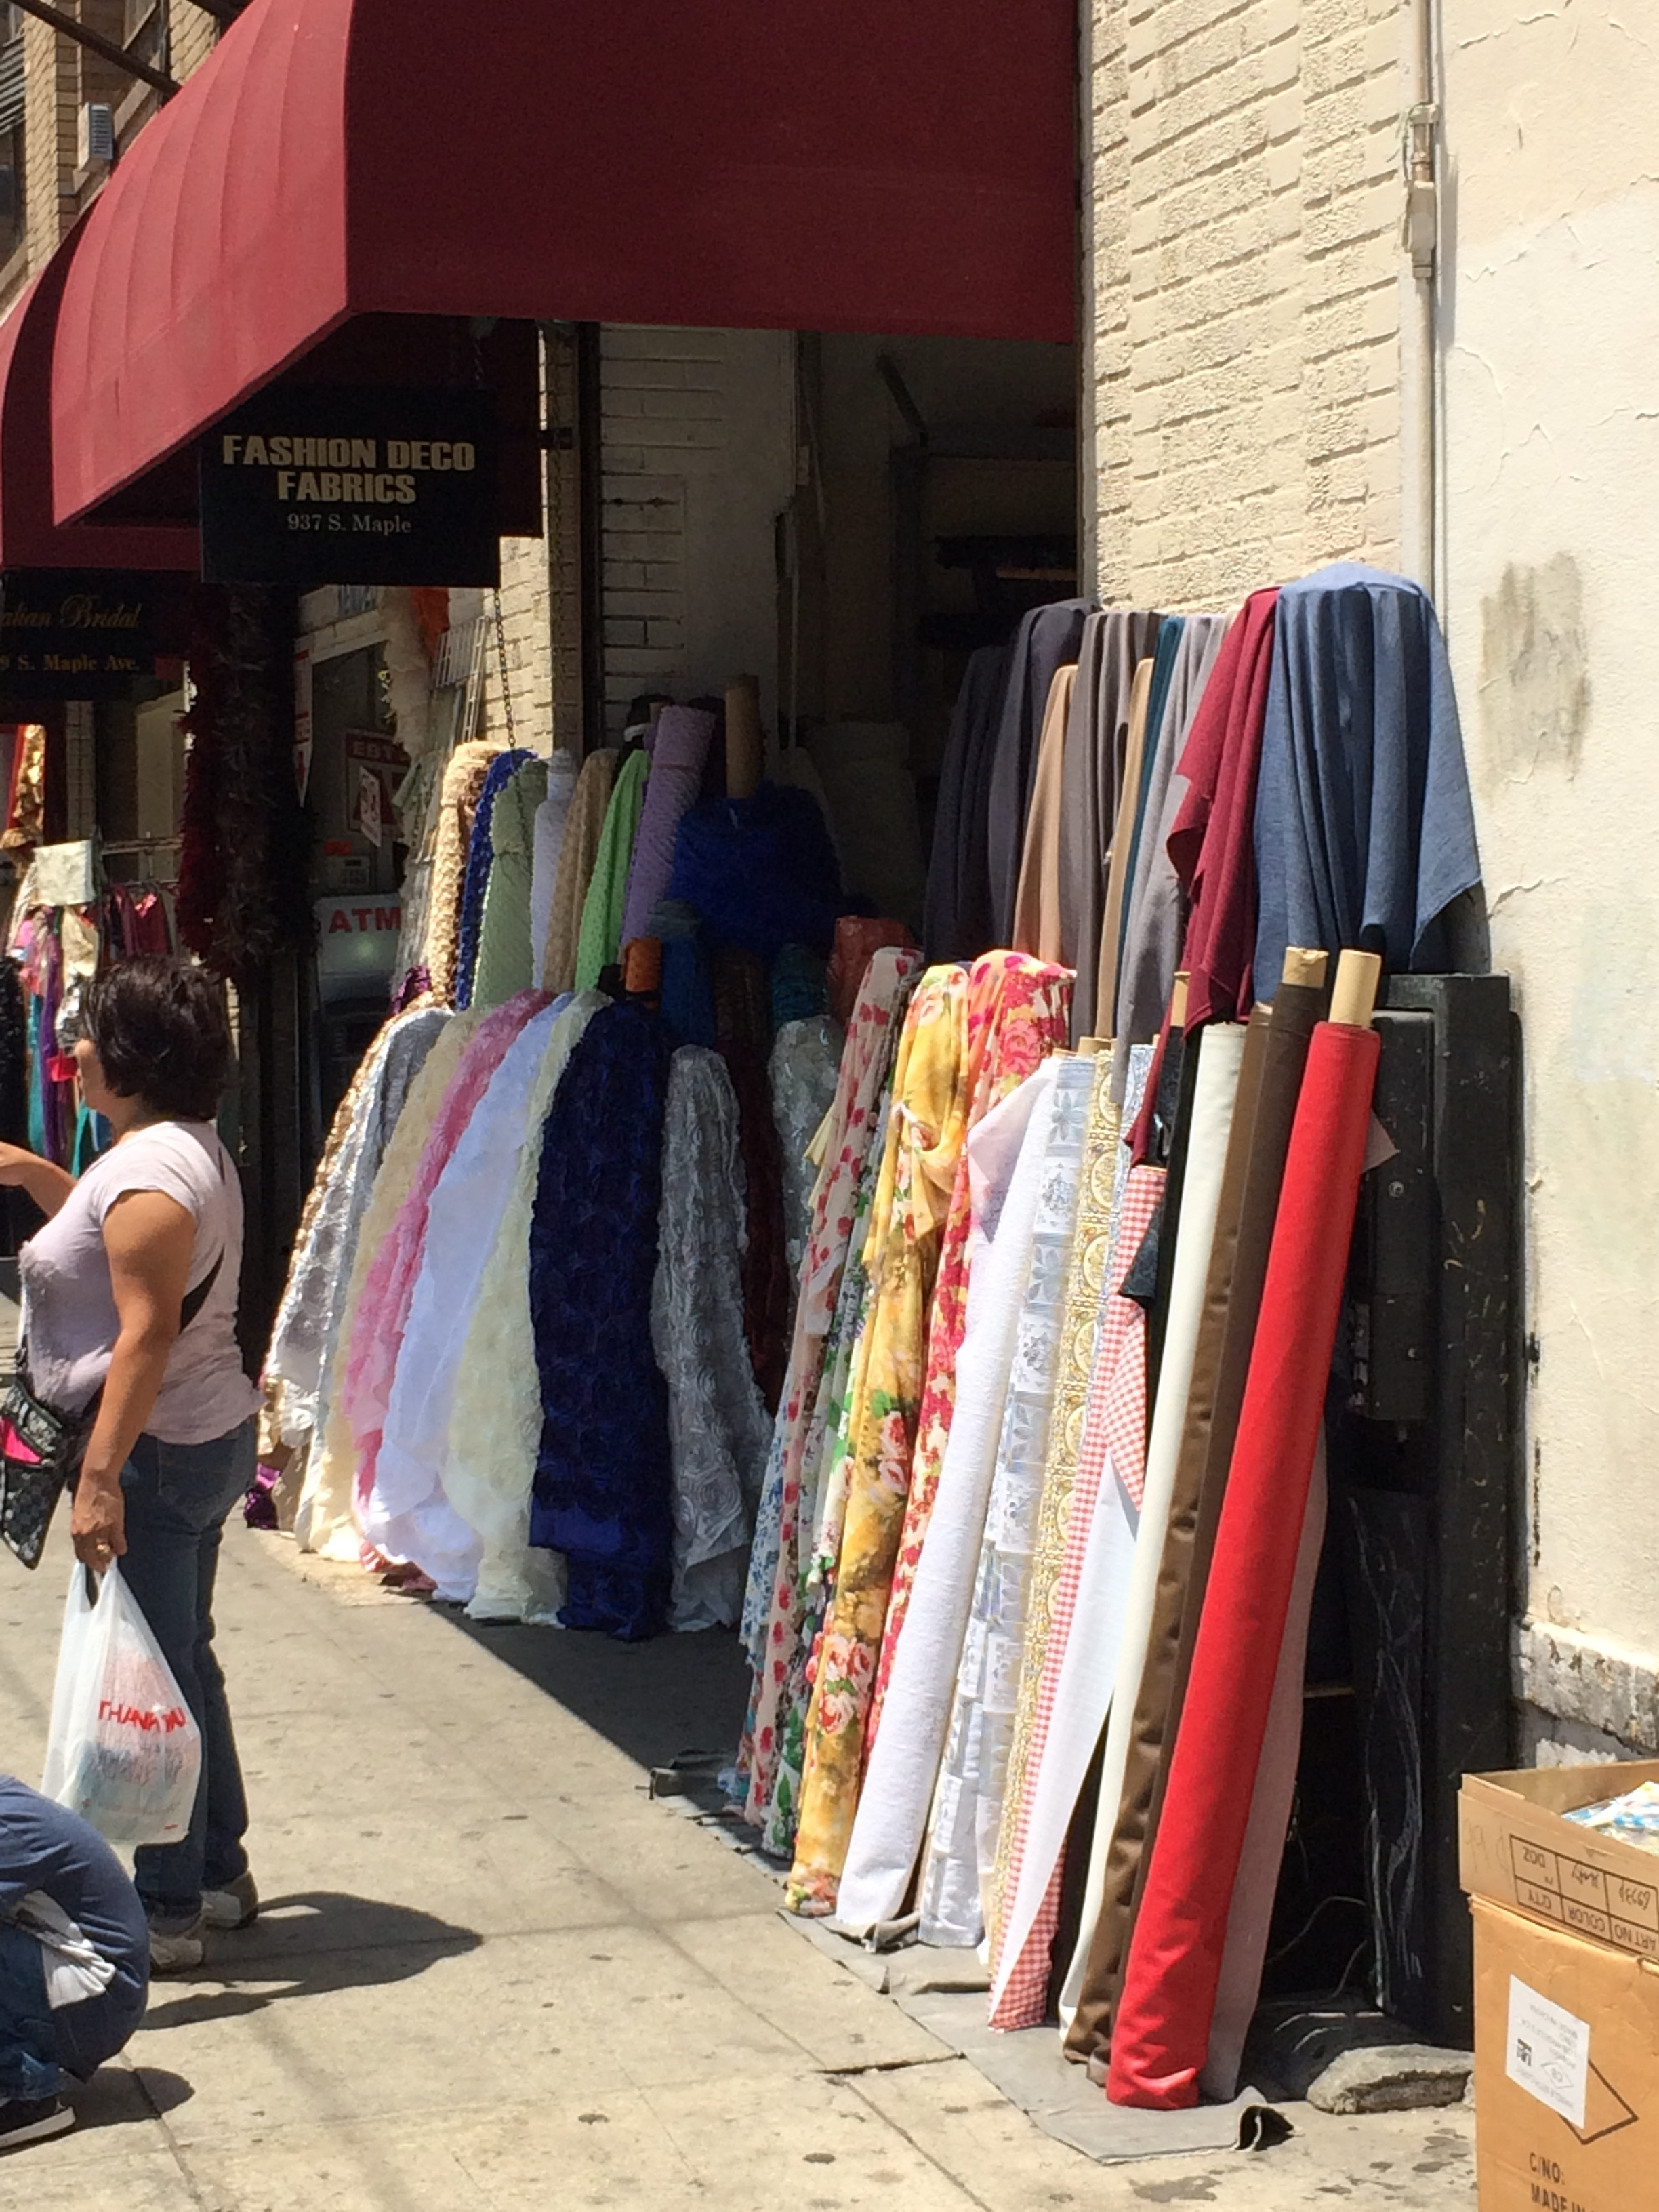 Fabric on the sidewalks everywhere!